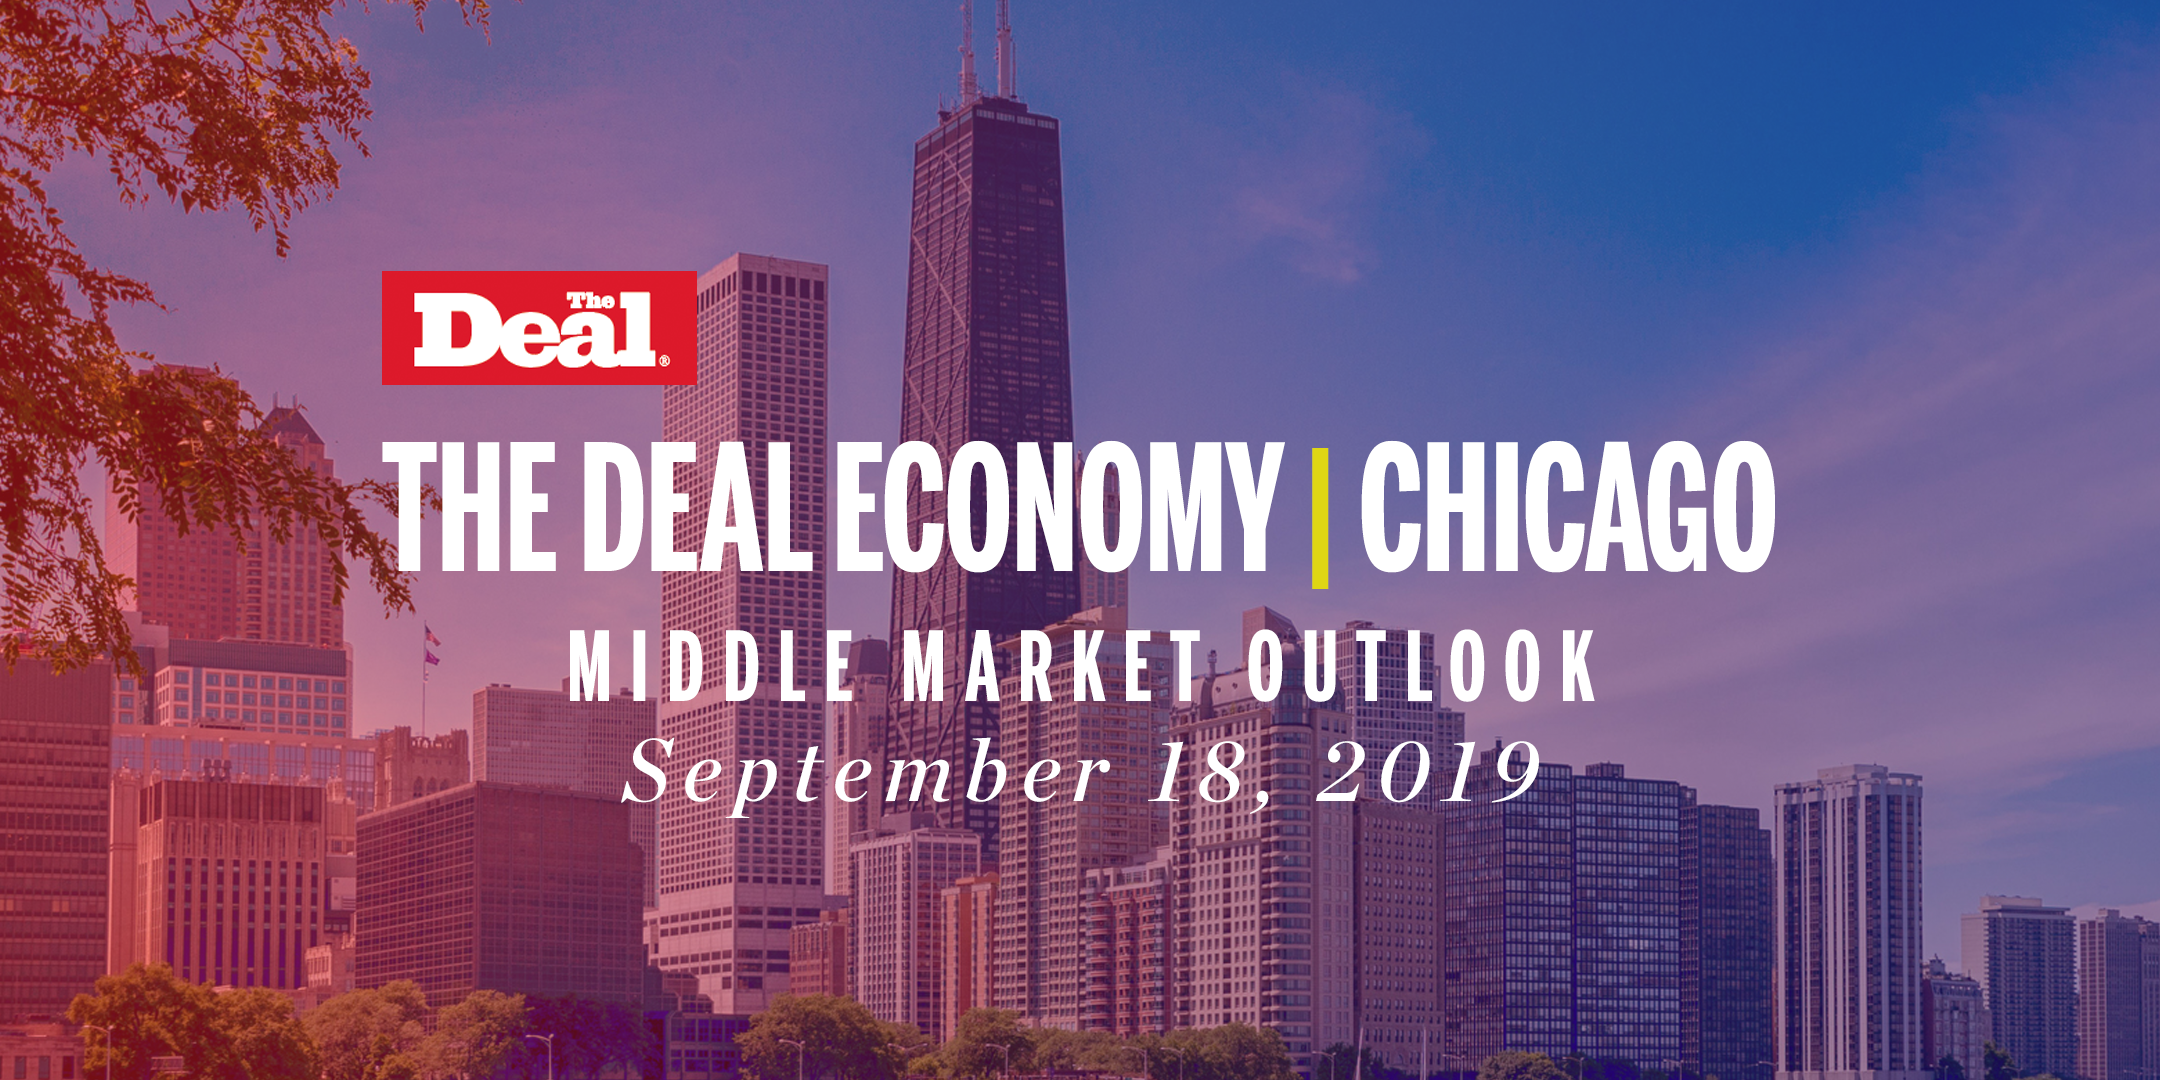 The Deal Economy Chicago 2019 Conference — September 18